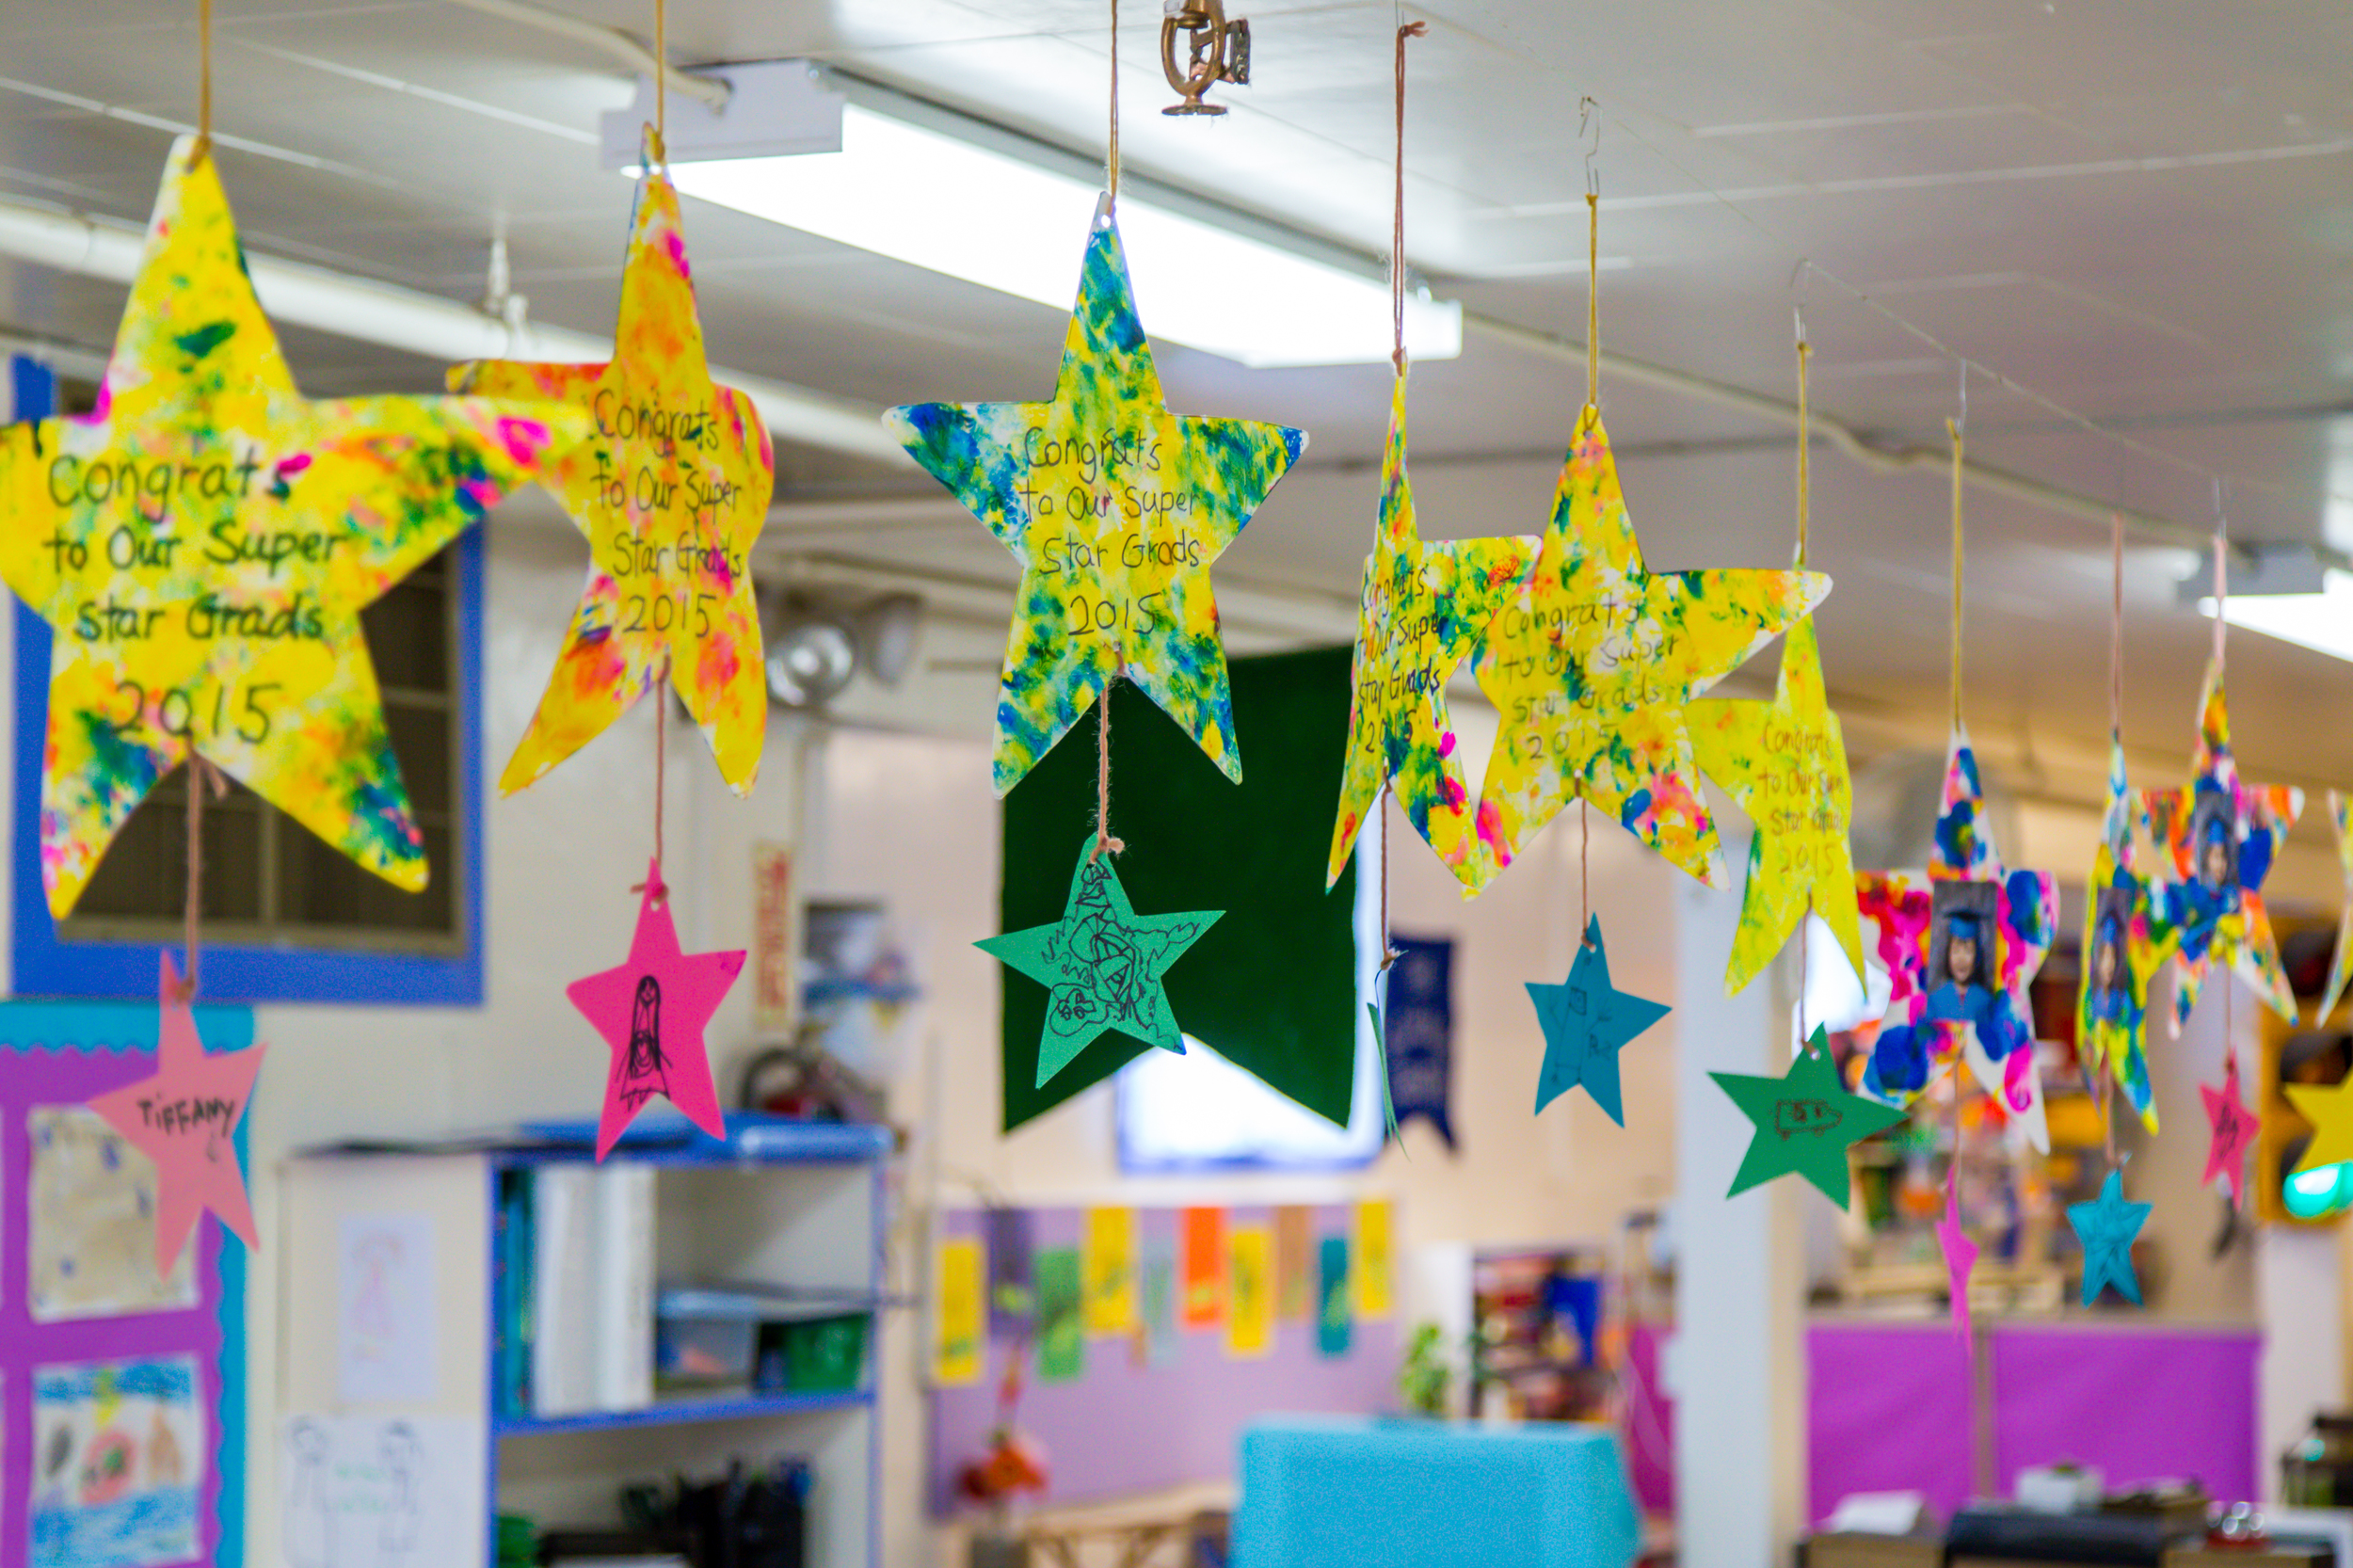 Bright colors and artwork bring an exciting feel to the classroom and a sense of accomplishment to the children when they see their names.